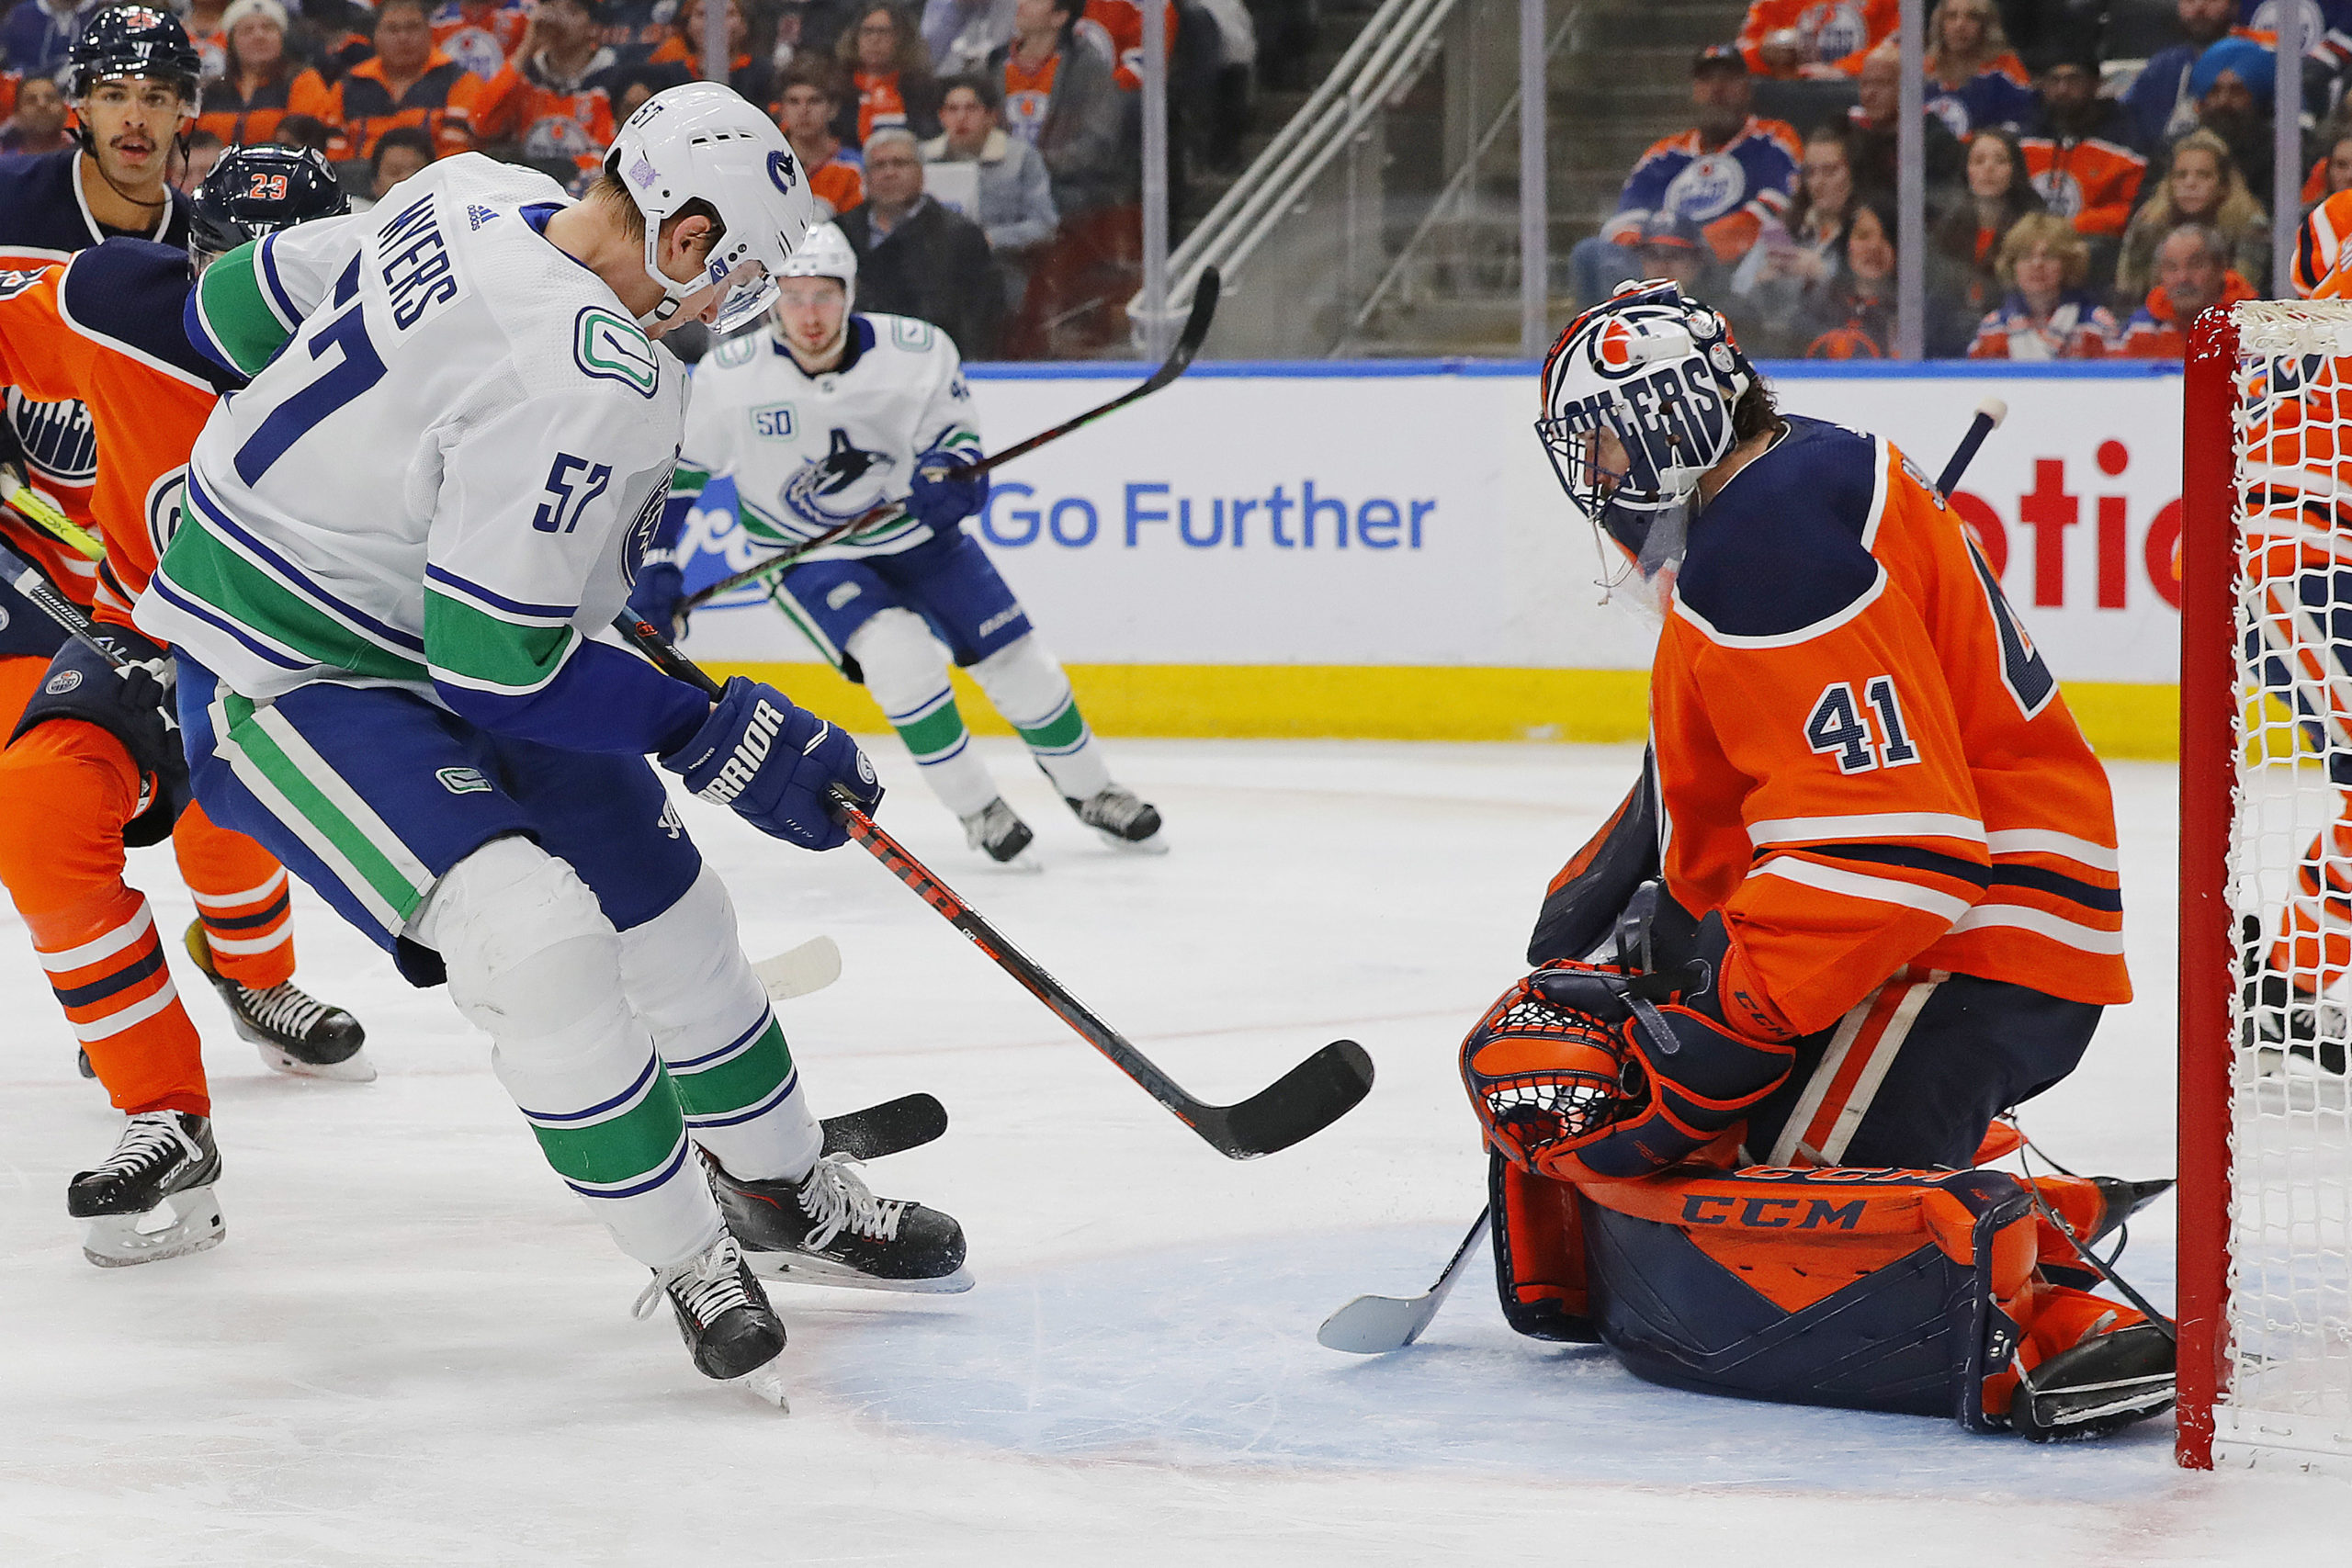 Canucks Vs Oilers 01 13 21 Odds And Nhl Betting Trends